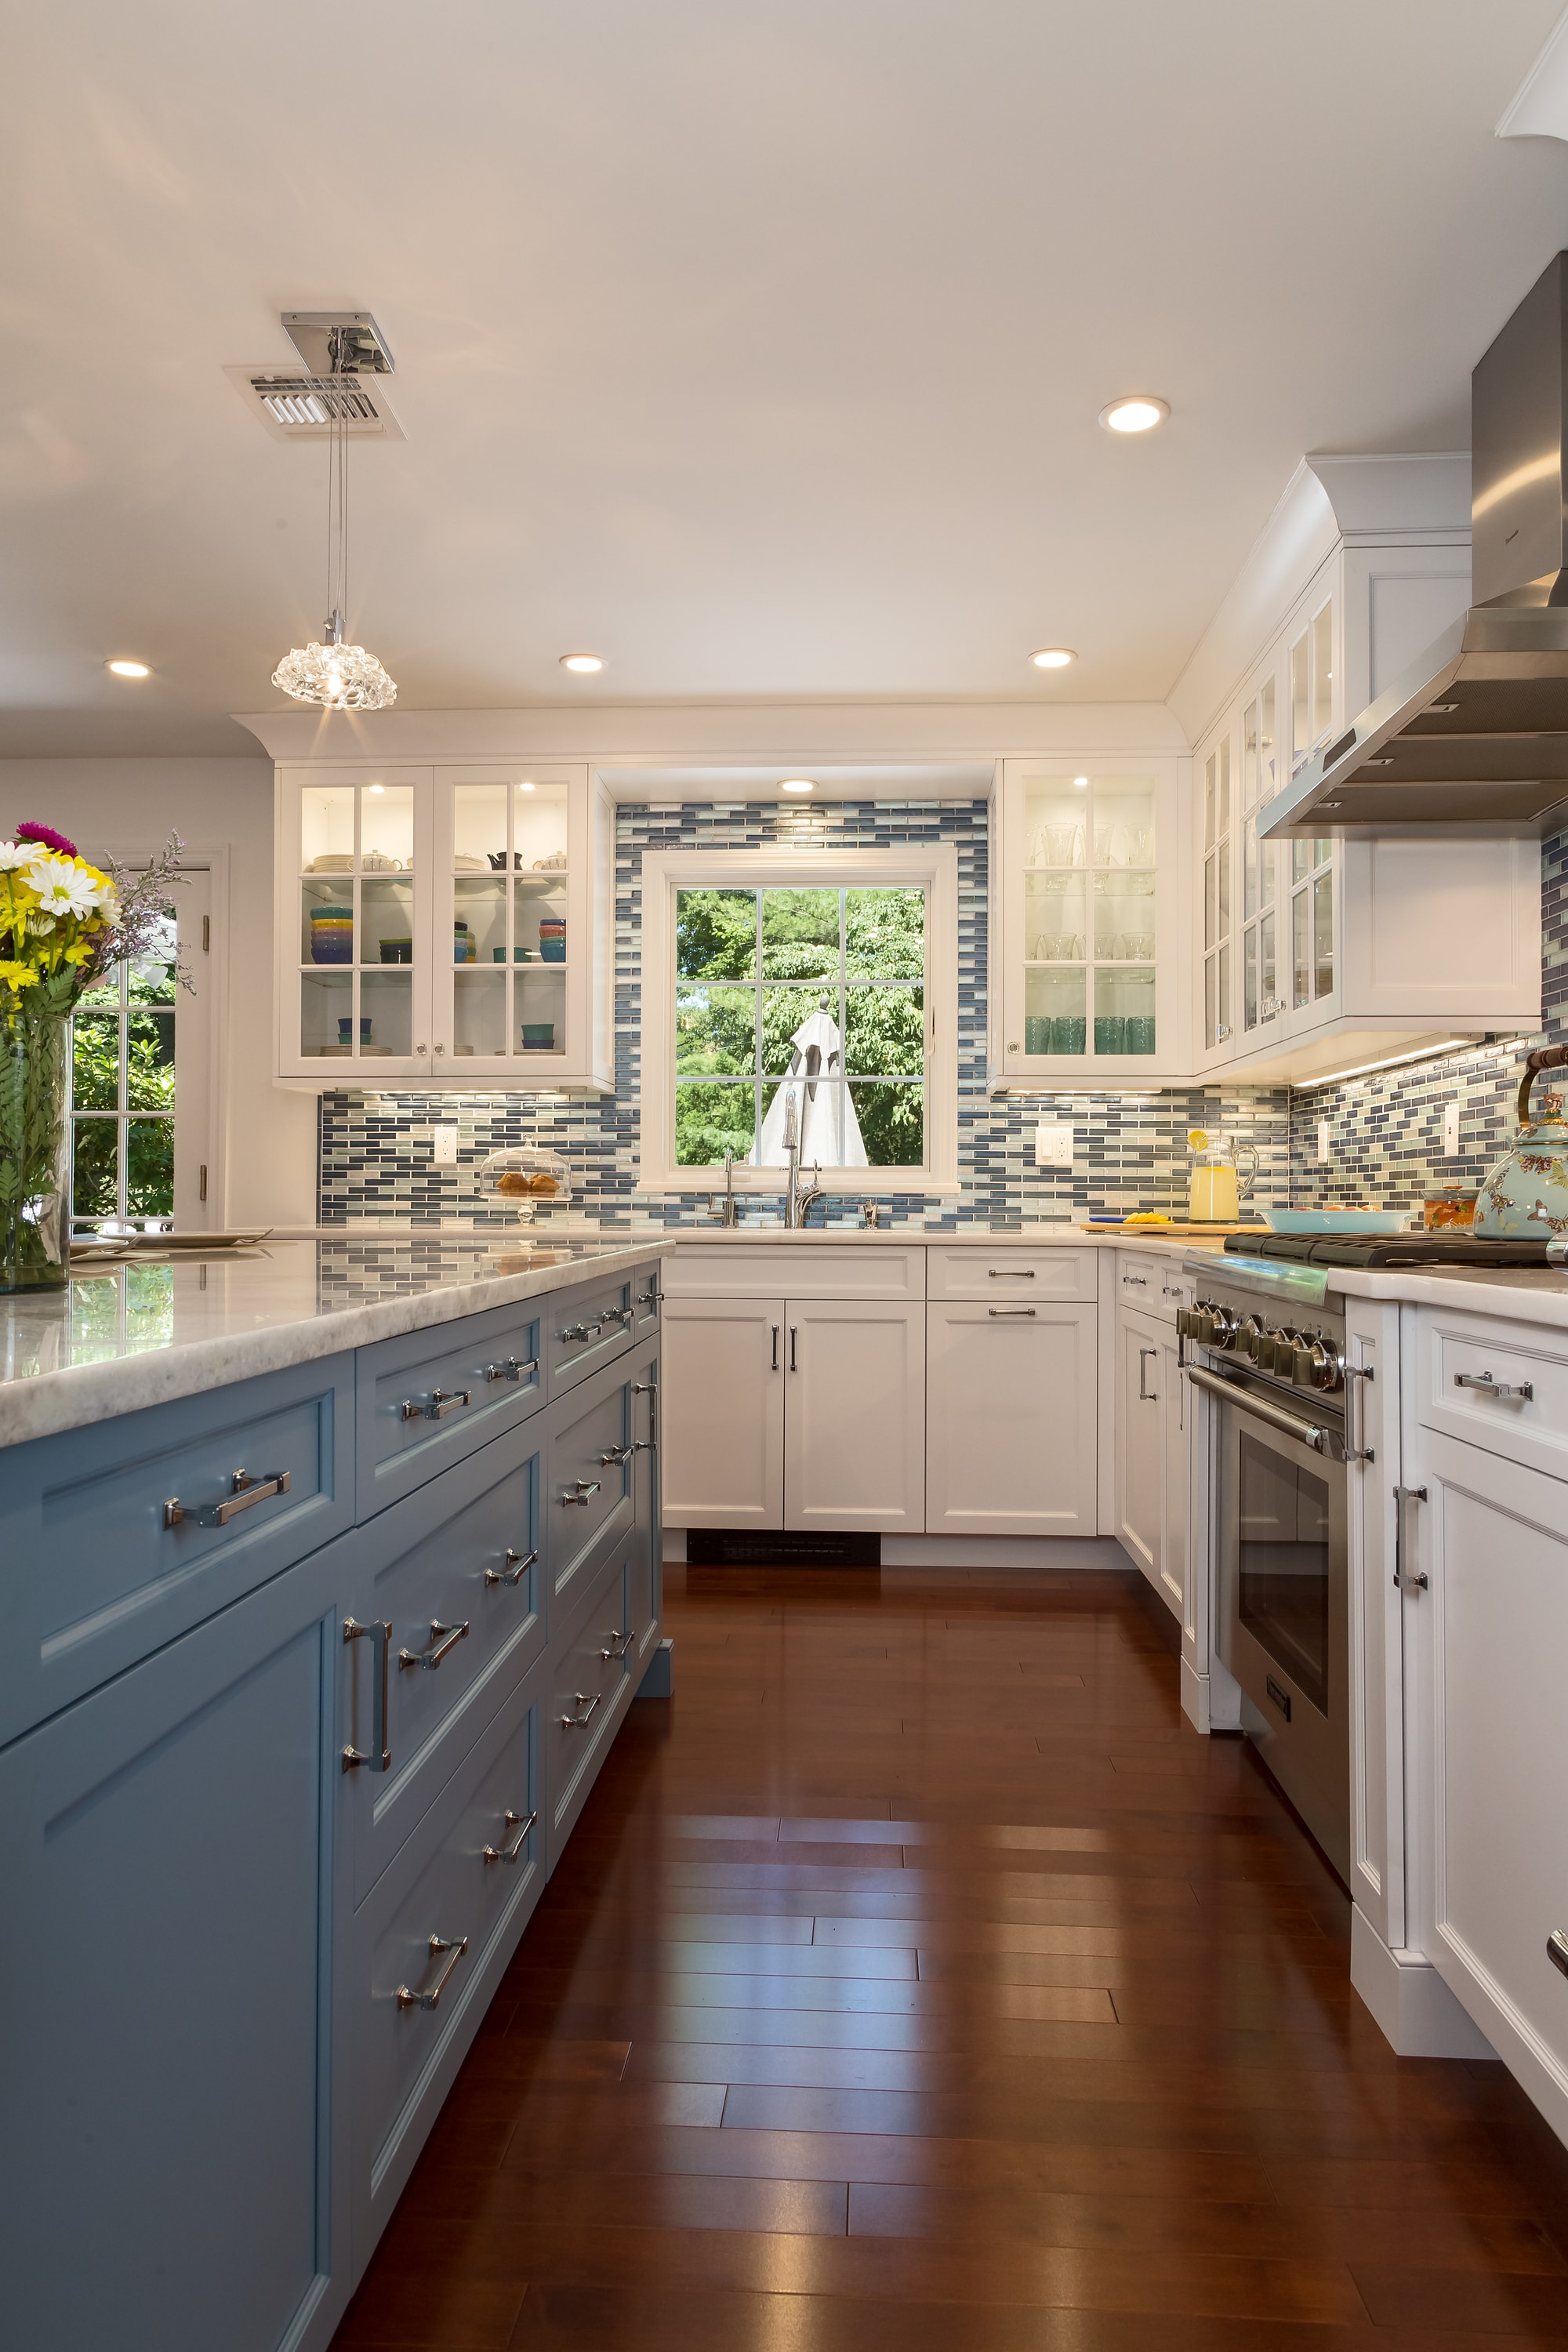 Transitional style kitchen with single pendant light fixture